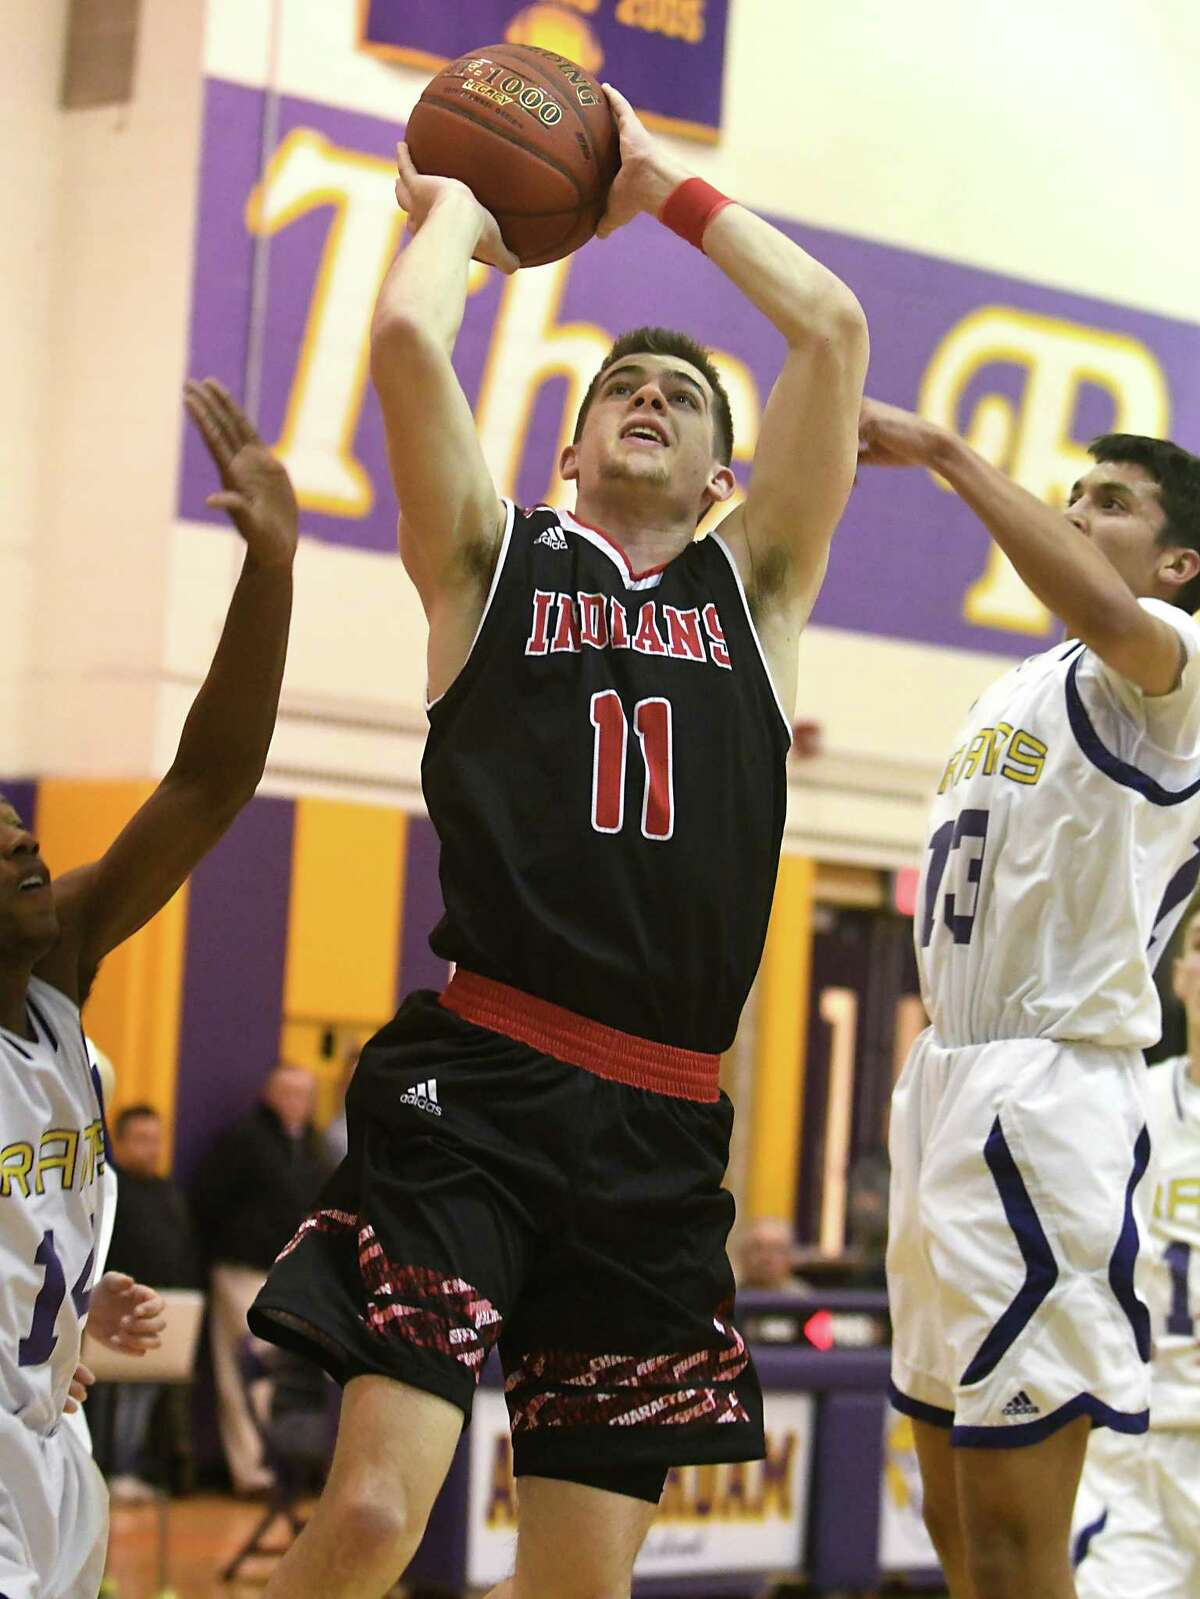 Glens Falls' Joseph Girard III drives to the basket during a basketball game against Amsterdam on Tuesday, Jan. 30, 2018 in Amsterdam, N.Y. (Lori Van Buren/Times Union)